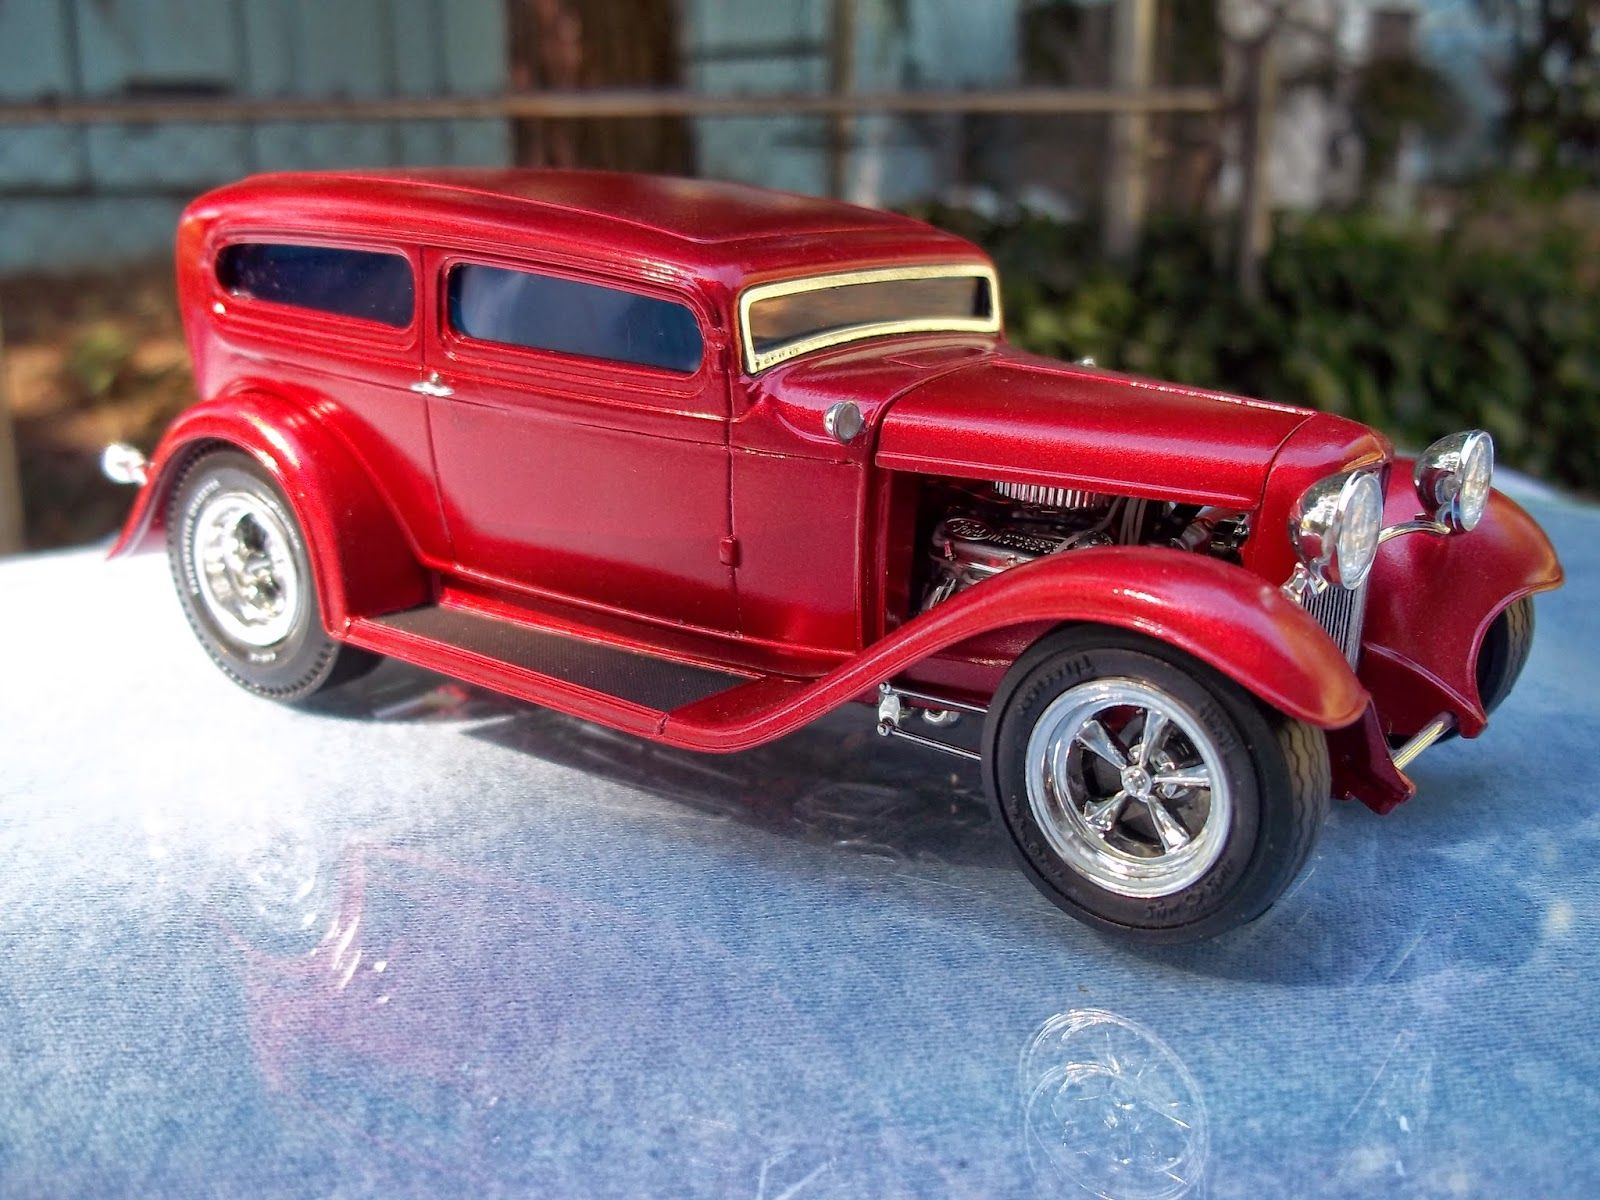 Lowrider car toys  Revell ford  by Skip Whaley  Toysmodels  Pinterest  Ford Model